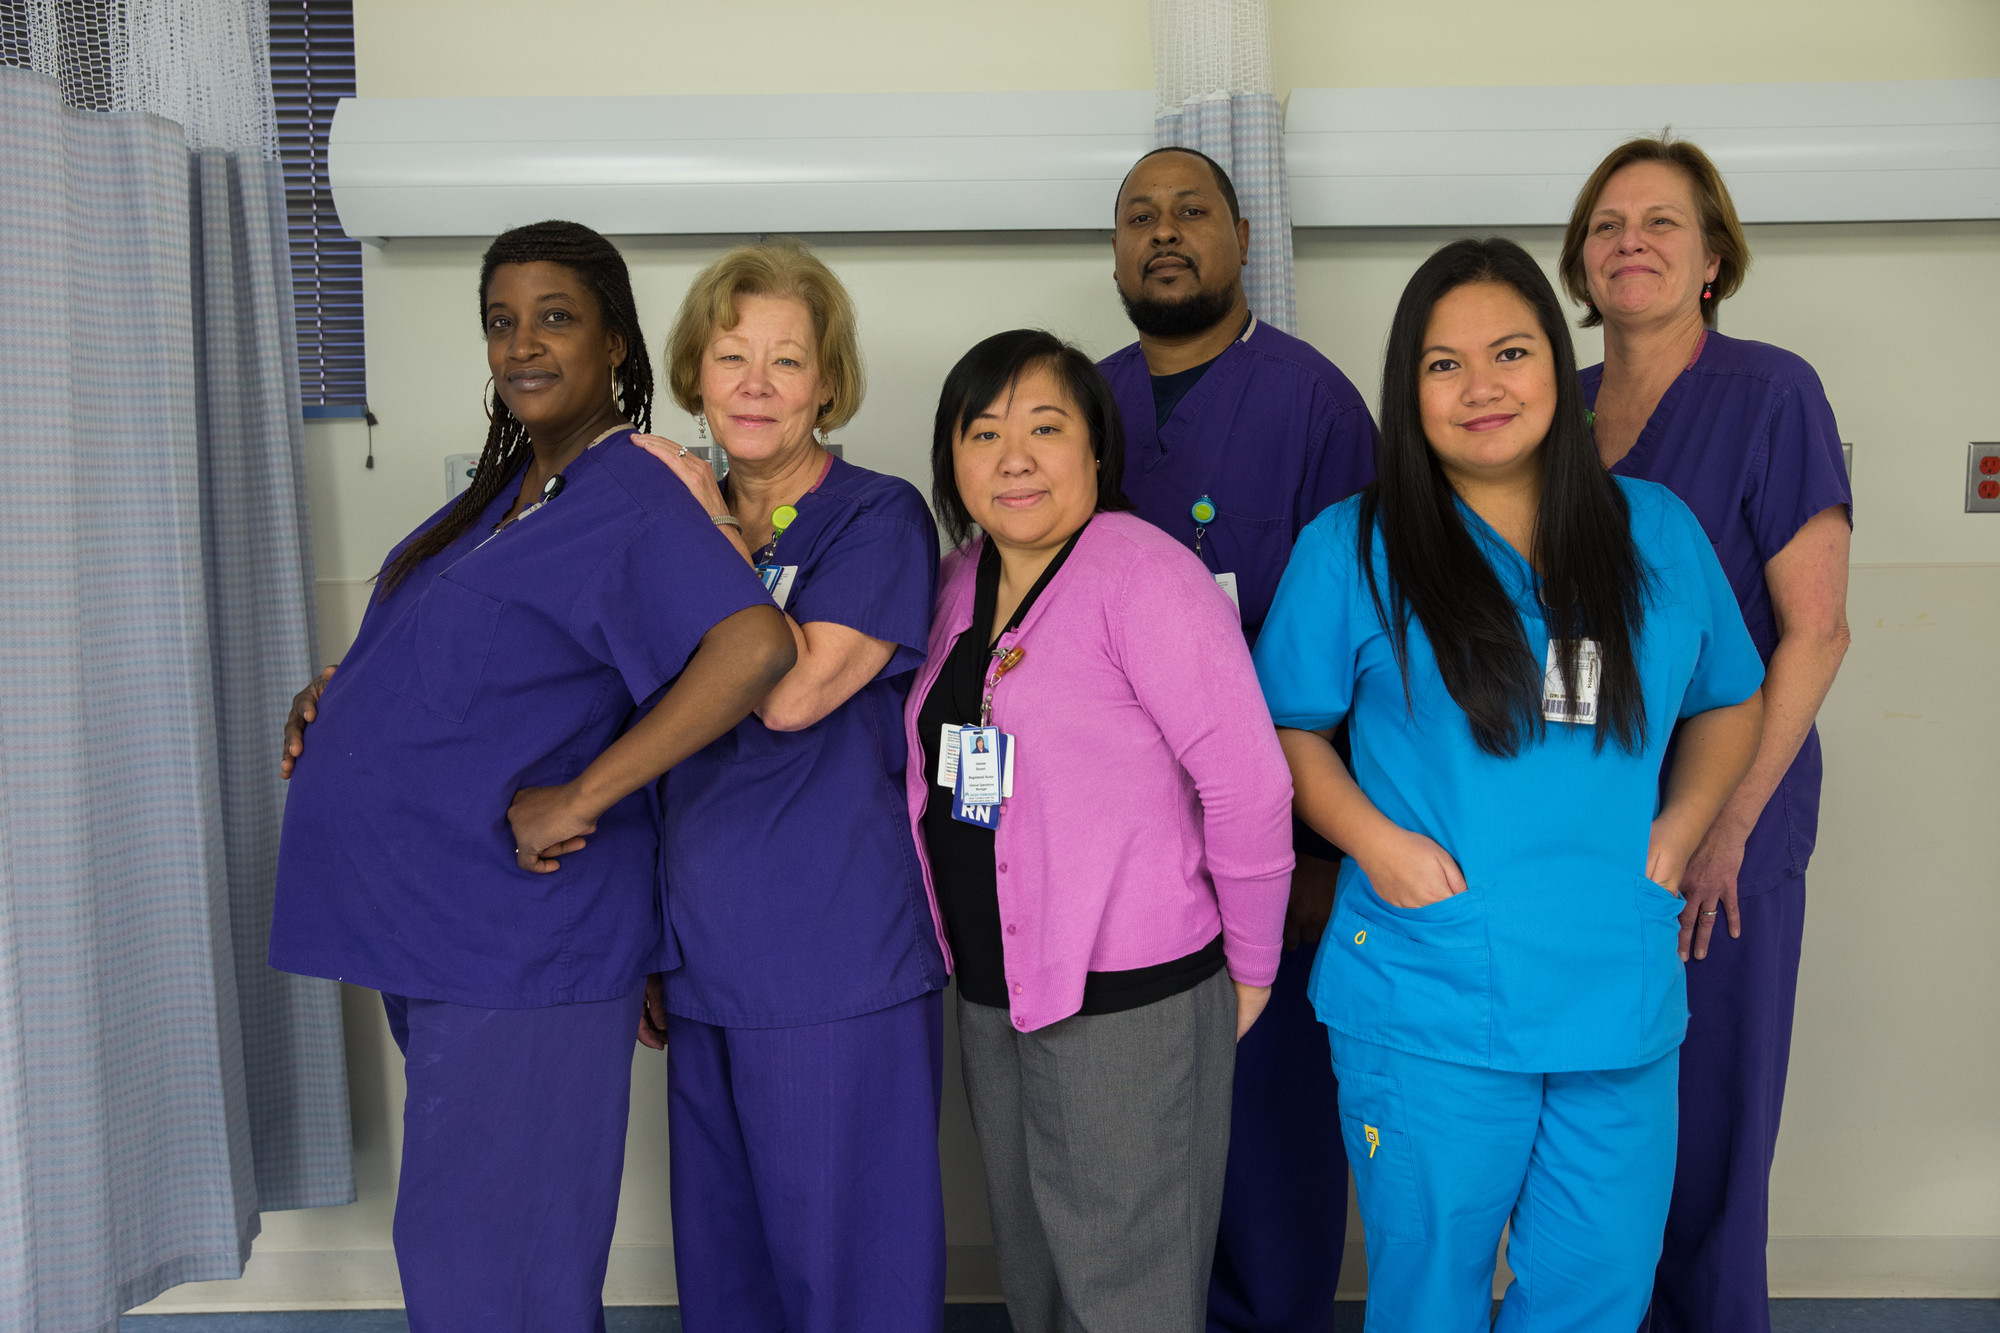 The endoscopy unit-based team at KP's Falls Church facility